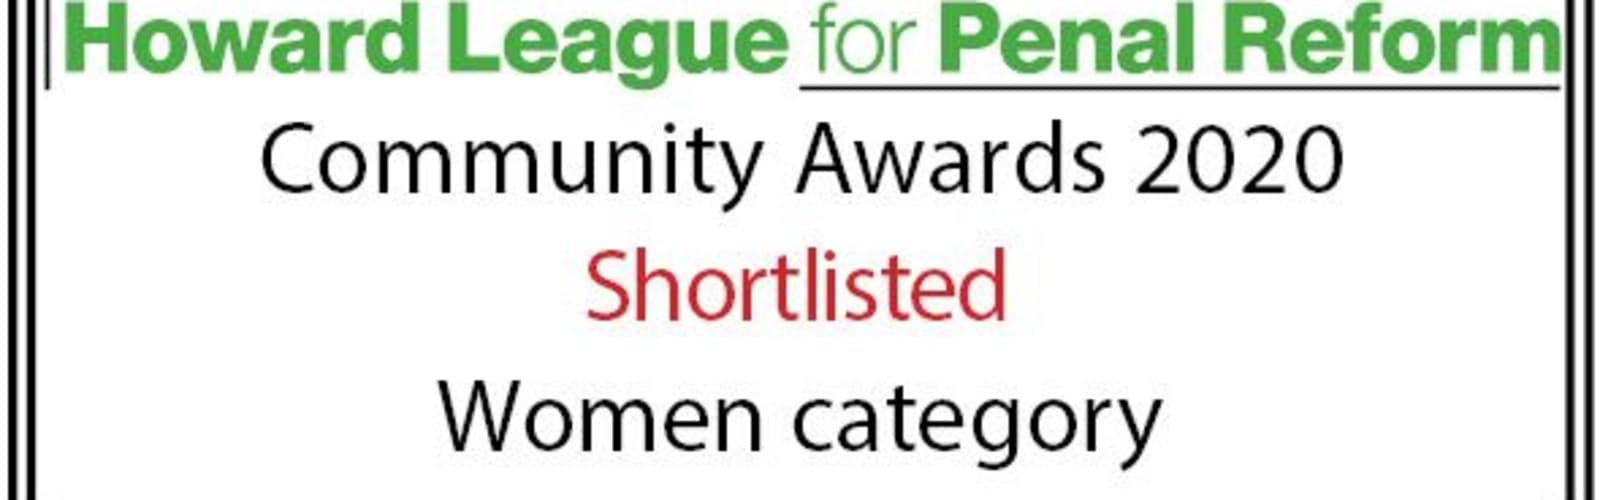 Footprints Women's Scheme is Shortlisted For a Howard League Community Award